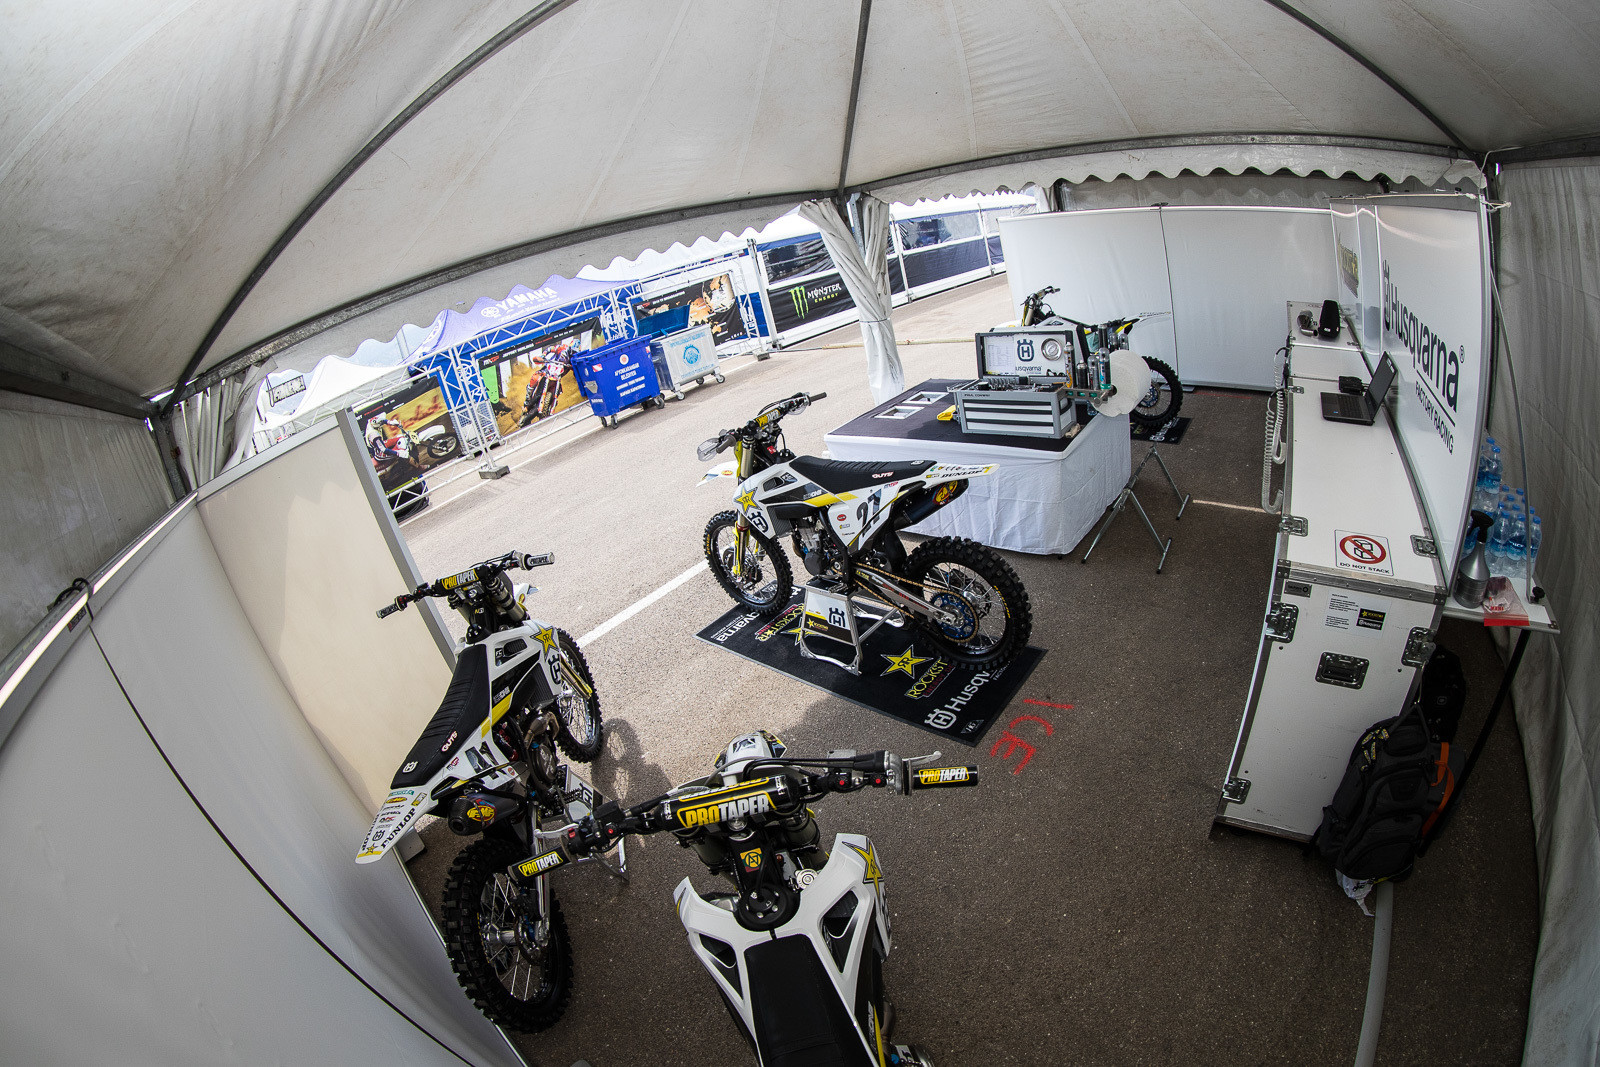 Here's the setup for the Rockstar Energy Husqvarna Factory Racing squad.